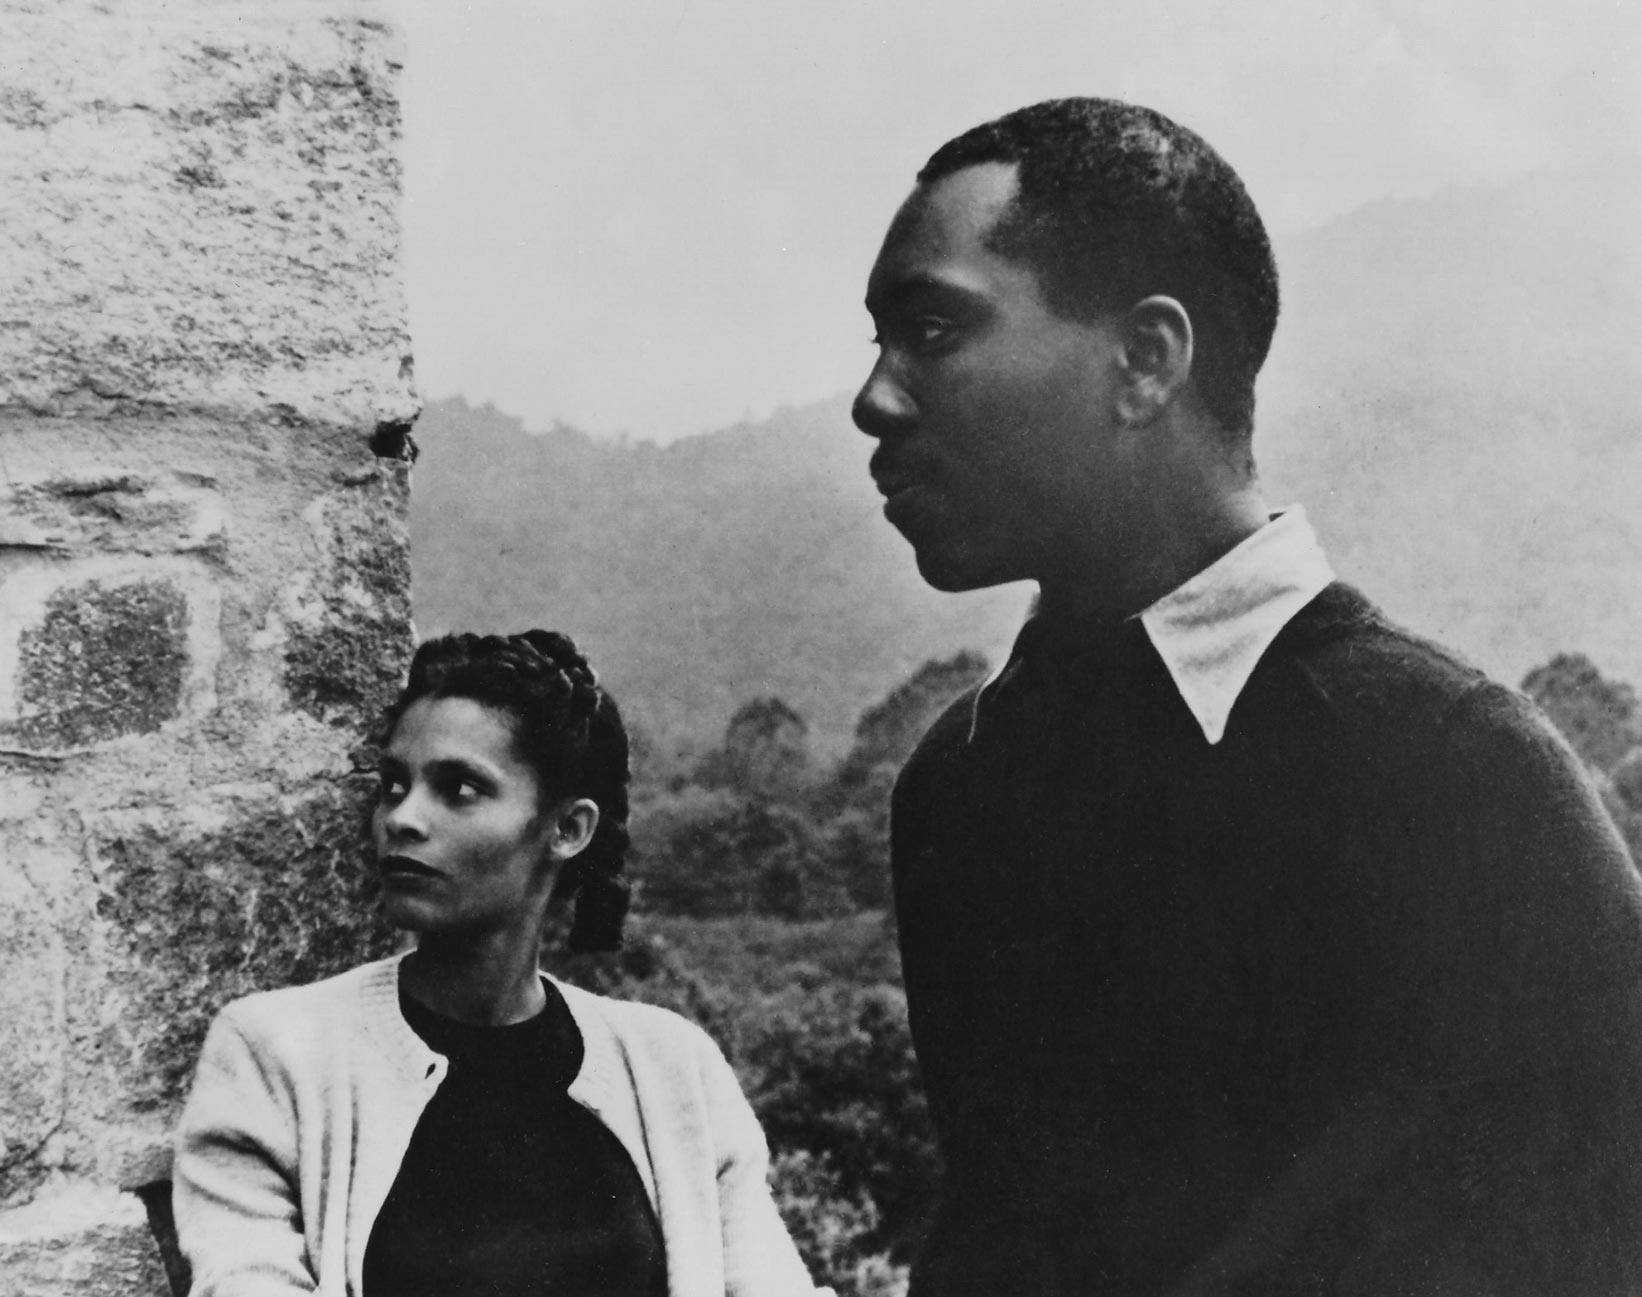 In this black and white portrait, Gwendolyn Knight and Jacob Lawrence stand by one another in profile, with the mountains behind them. Gwendolyn is leaning against a stone wall.